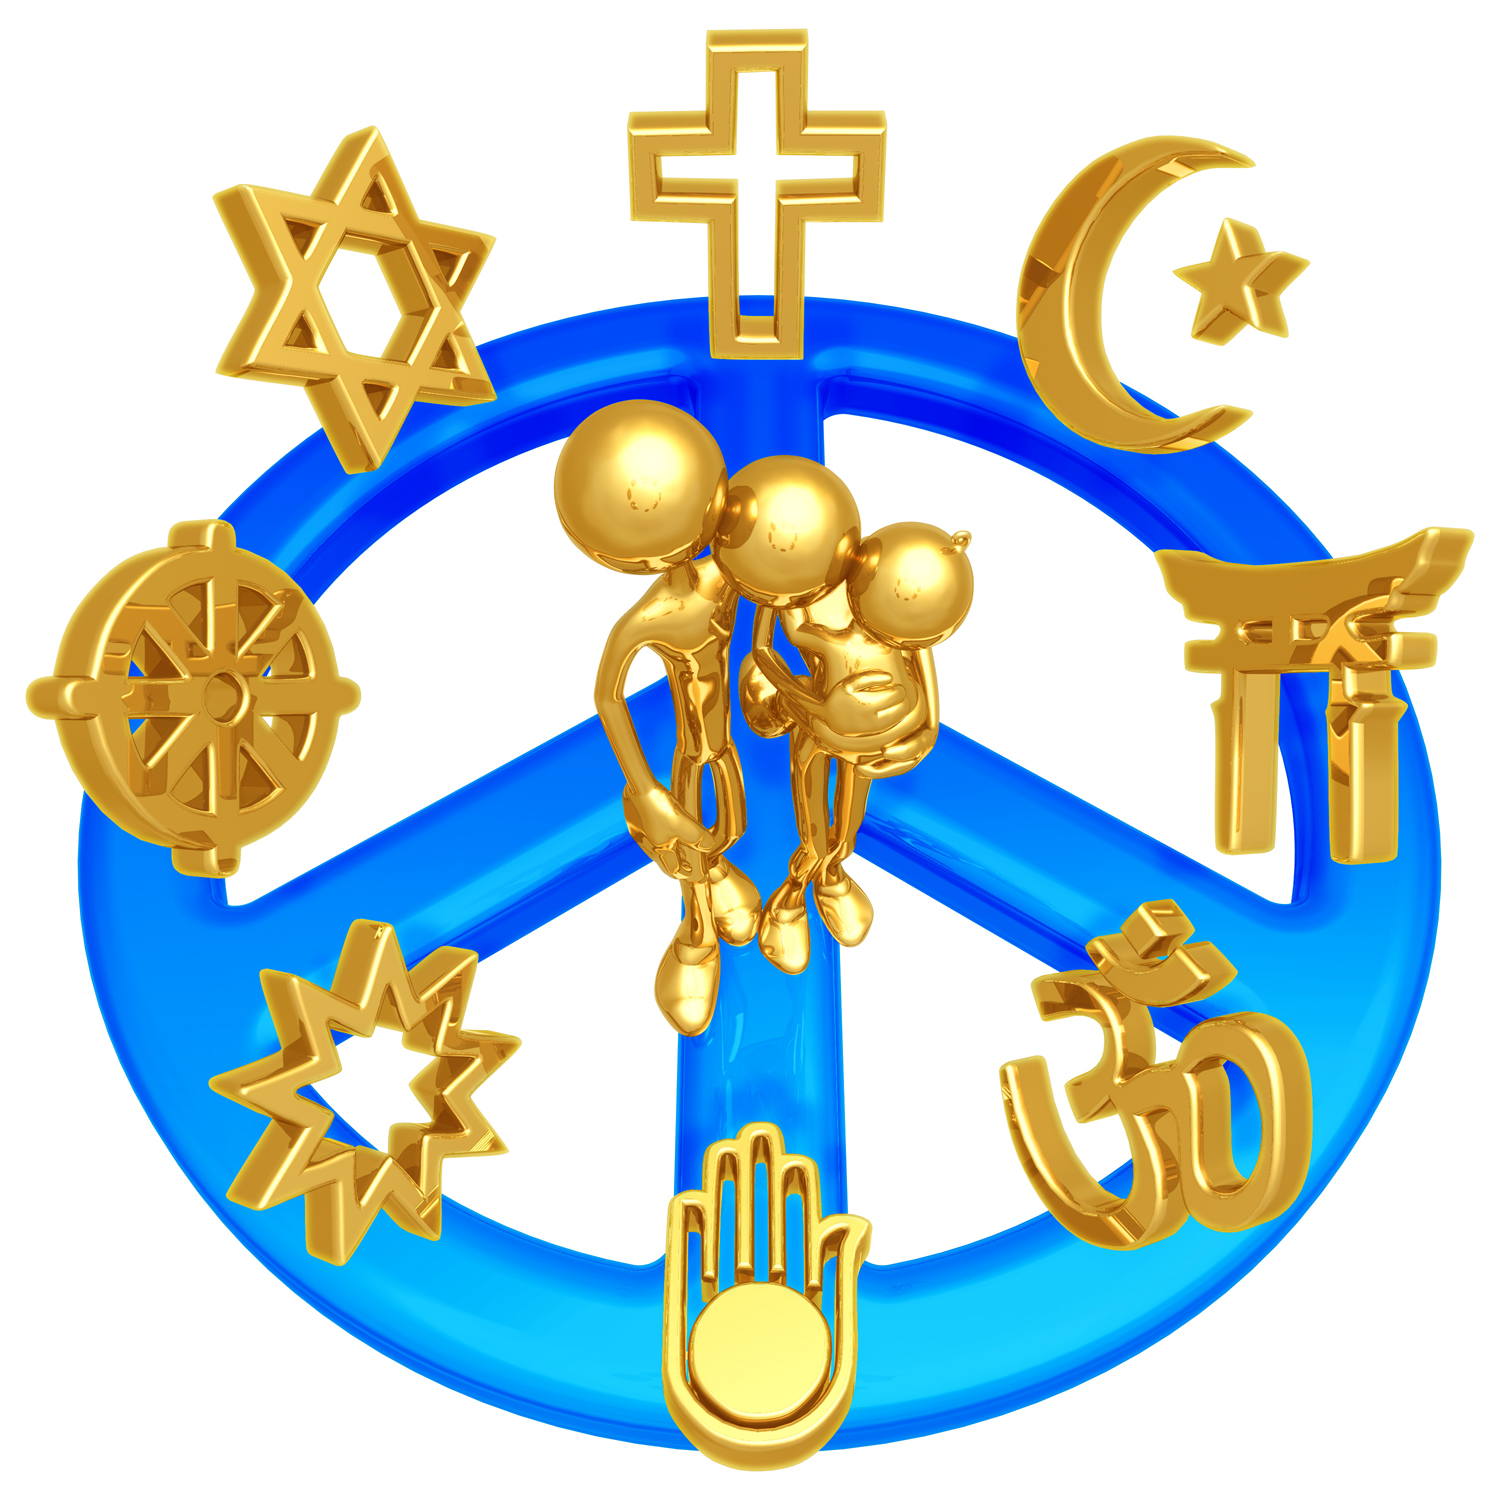 List Of Different Religions Of The World Images - List of different religions in the world